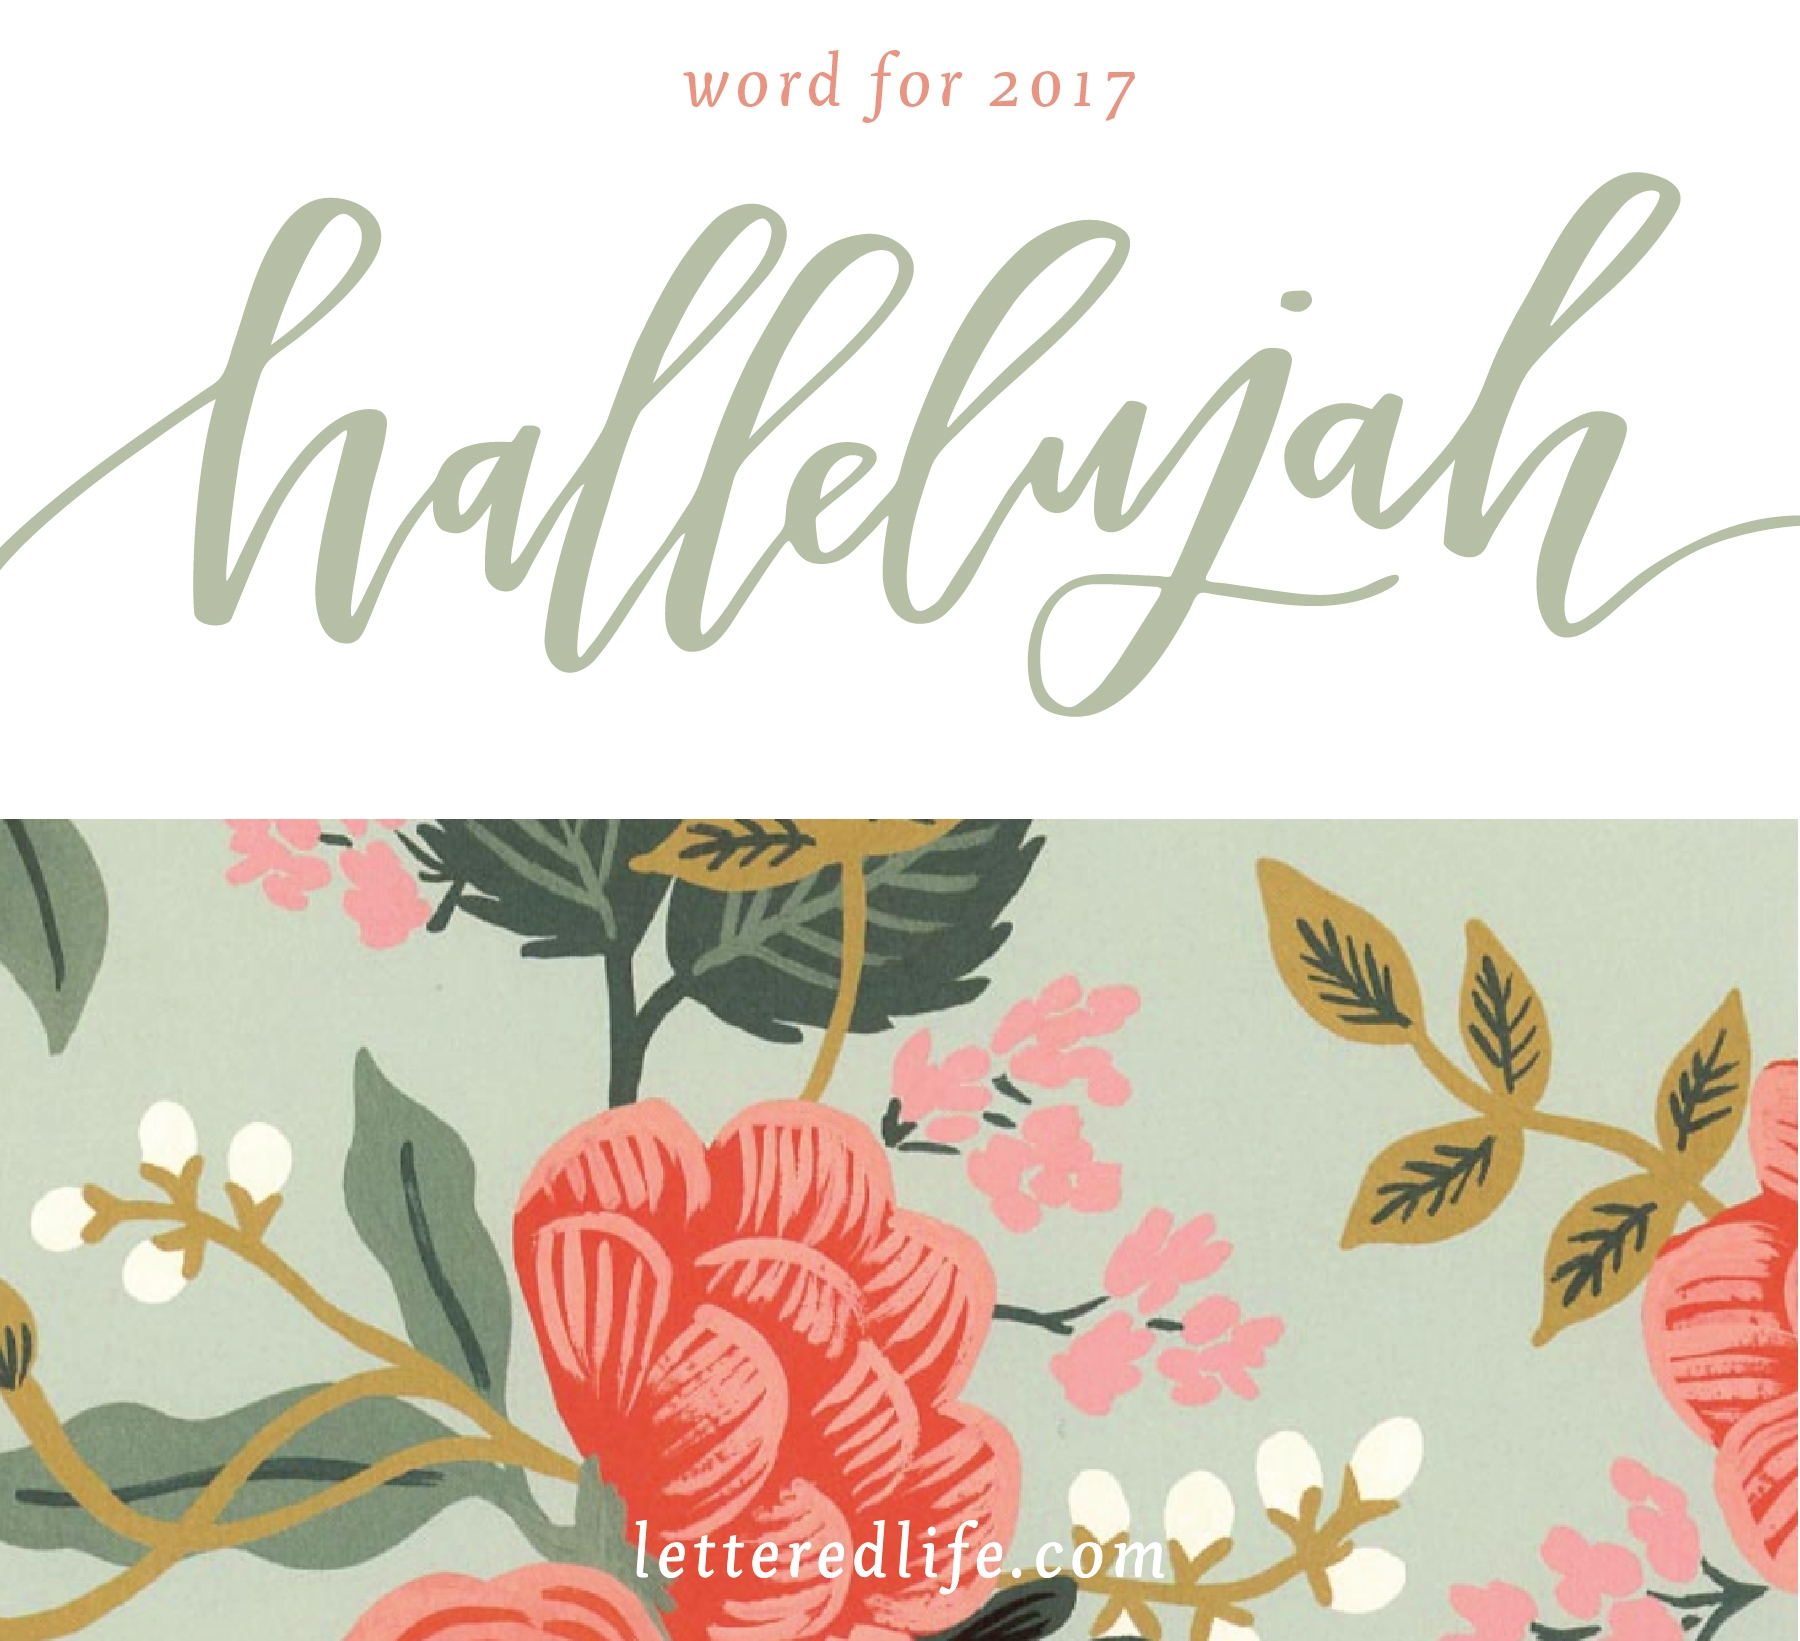 Lettered Life Word for 2017 | Hallelujah | Goal Setting Series 2017